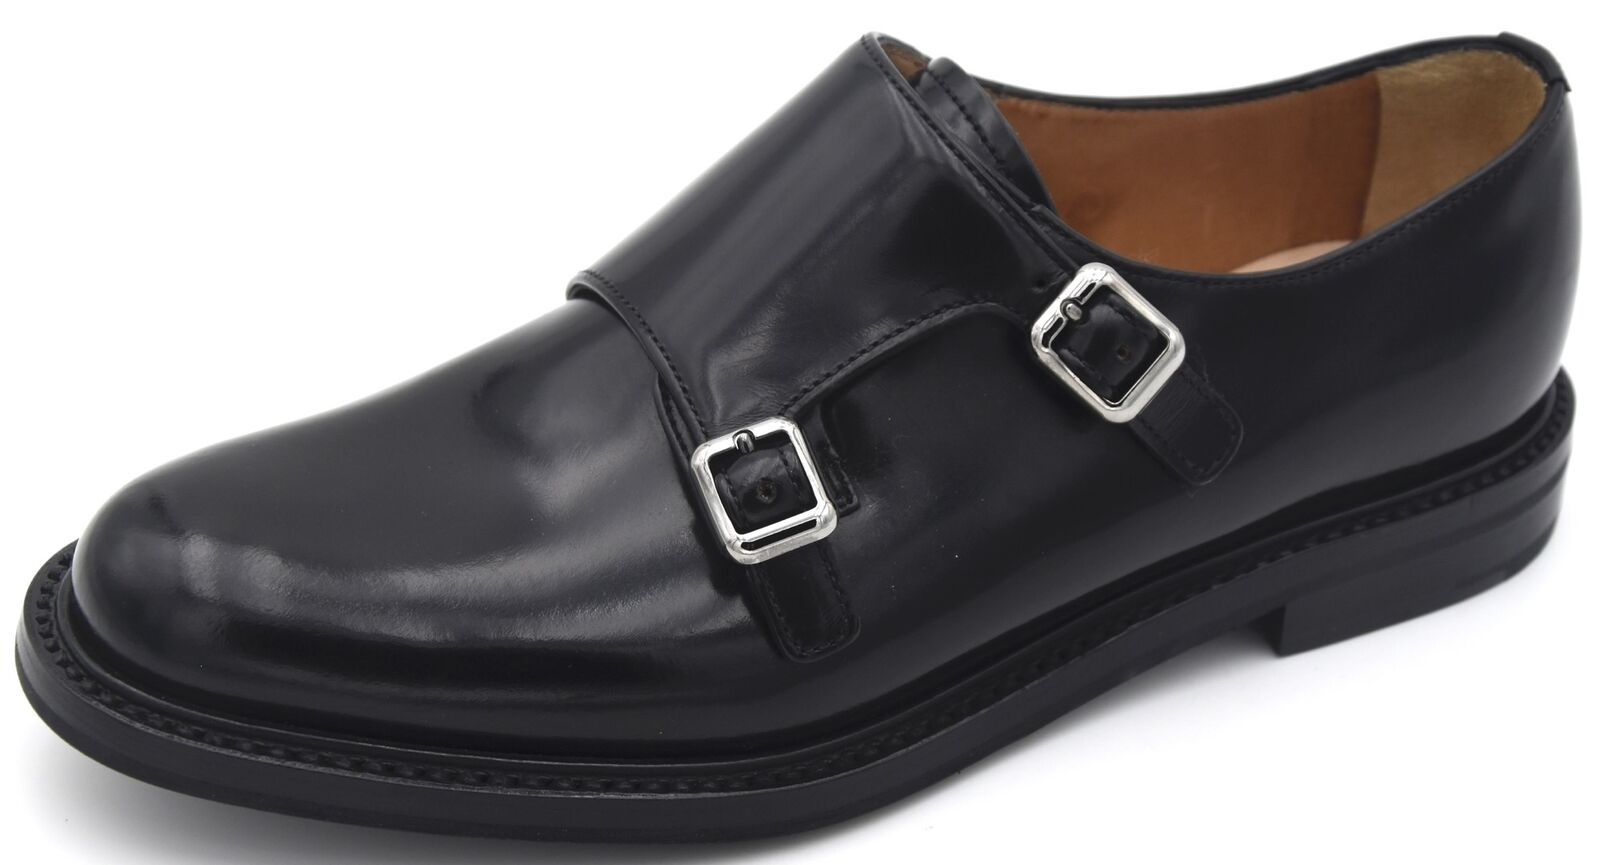 CHURCH'S WOMAN DREES SHOES BUSINESS DERBY CLASSIC LEATHER CODE DO0005 LORA R